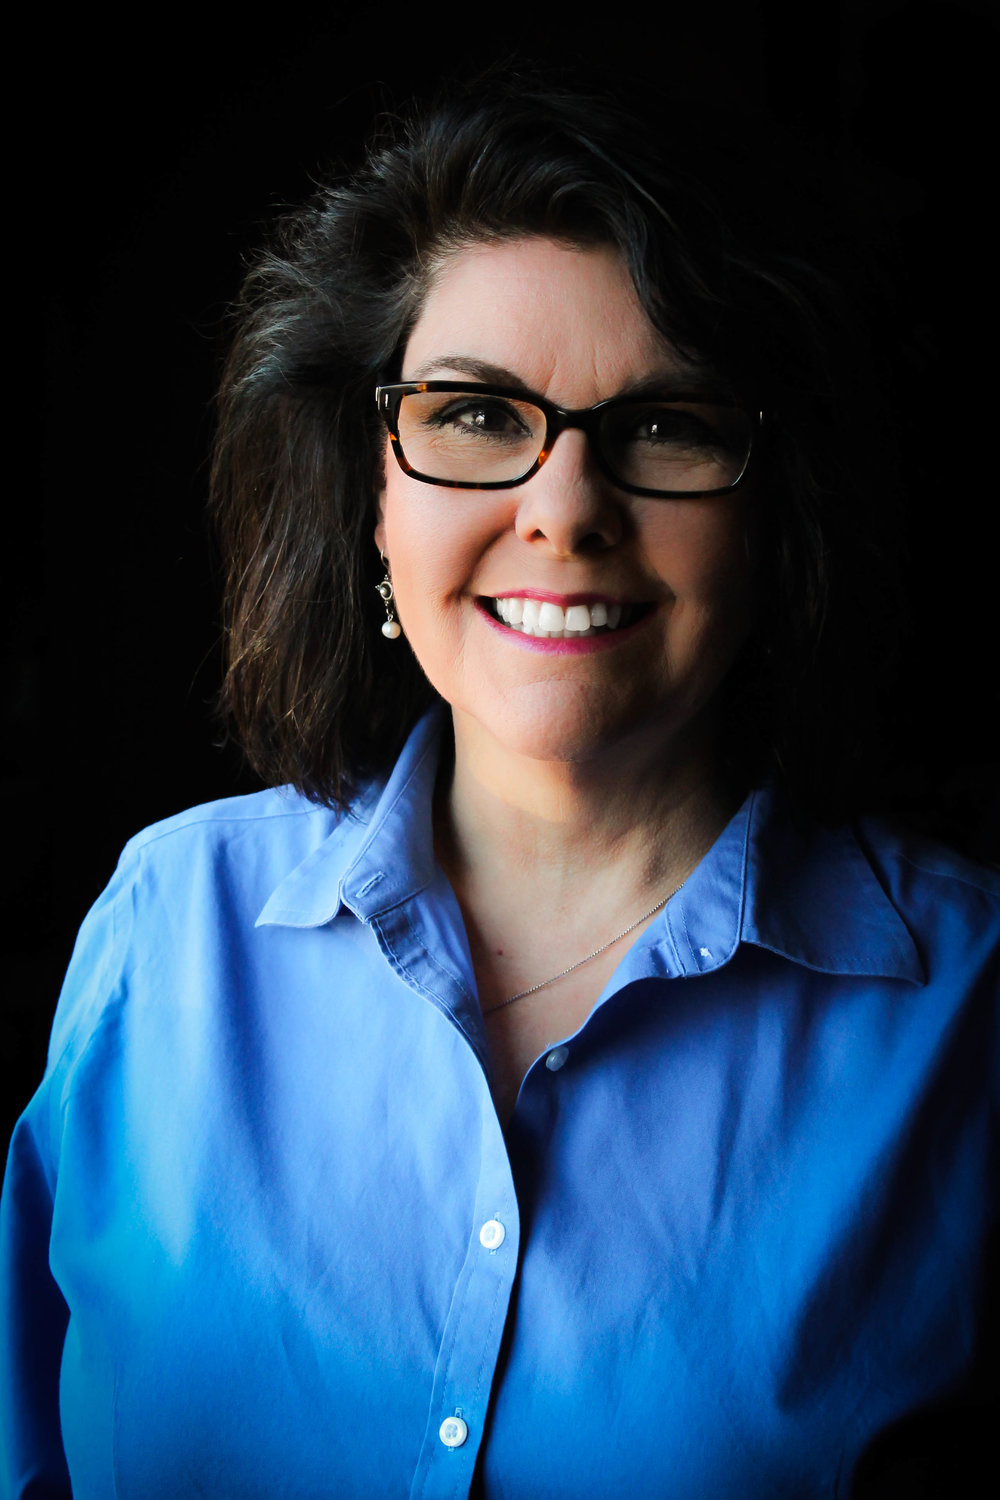 Autumn Ross, Senior Vice President  - Autumn Ross is vice president of A. Larry Ross Communications, which she co-founded with her husband in 1994.  In addition to responsibilities raising their three sons, Autumn is board chair of Cornerstone Lodge, a counseling service to individuals in full-time ministry; is a women's ministry Bible teacher; and serves her church in leading worship and drama.She is a graduate of Baylor University with a B.A. in Communications, and is natively fluent in Portuguese, after spending her formative years on the mission field in England and Brazil.